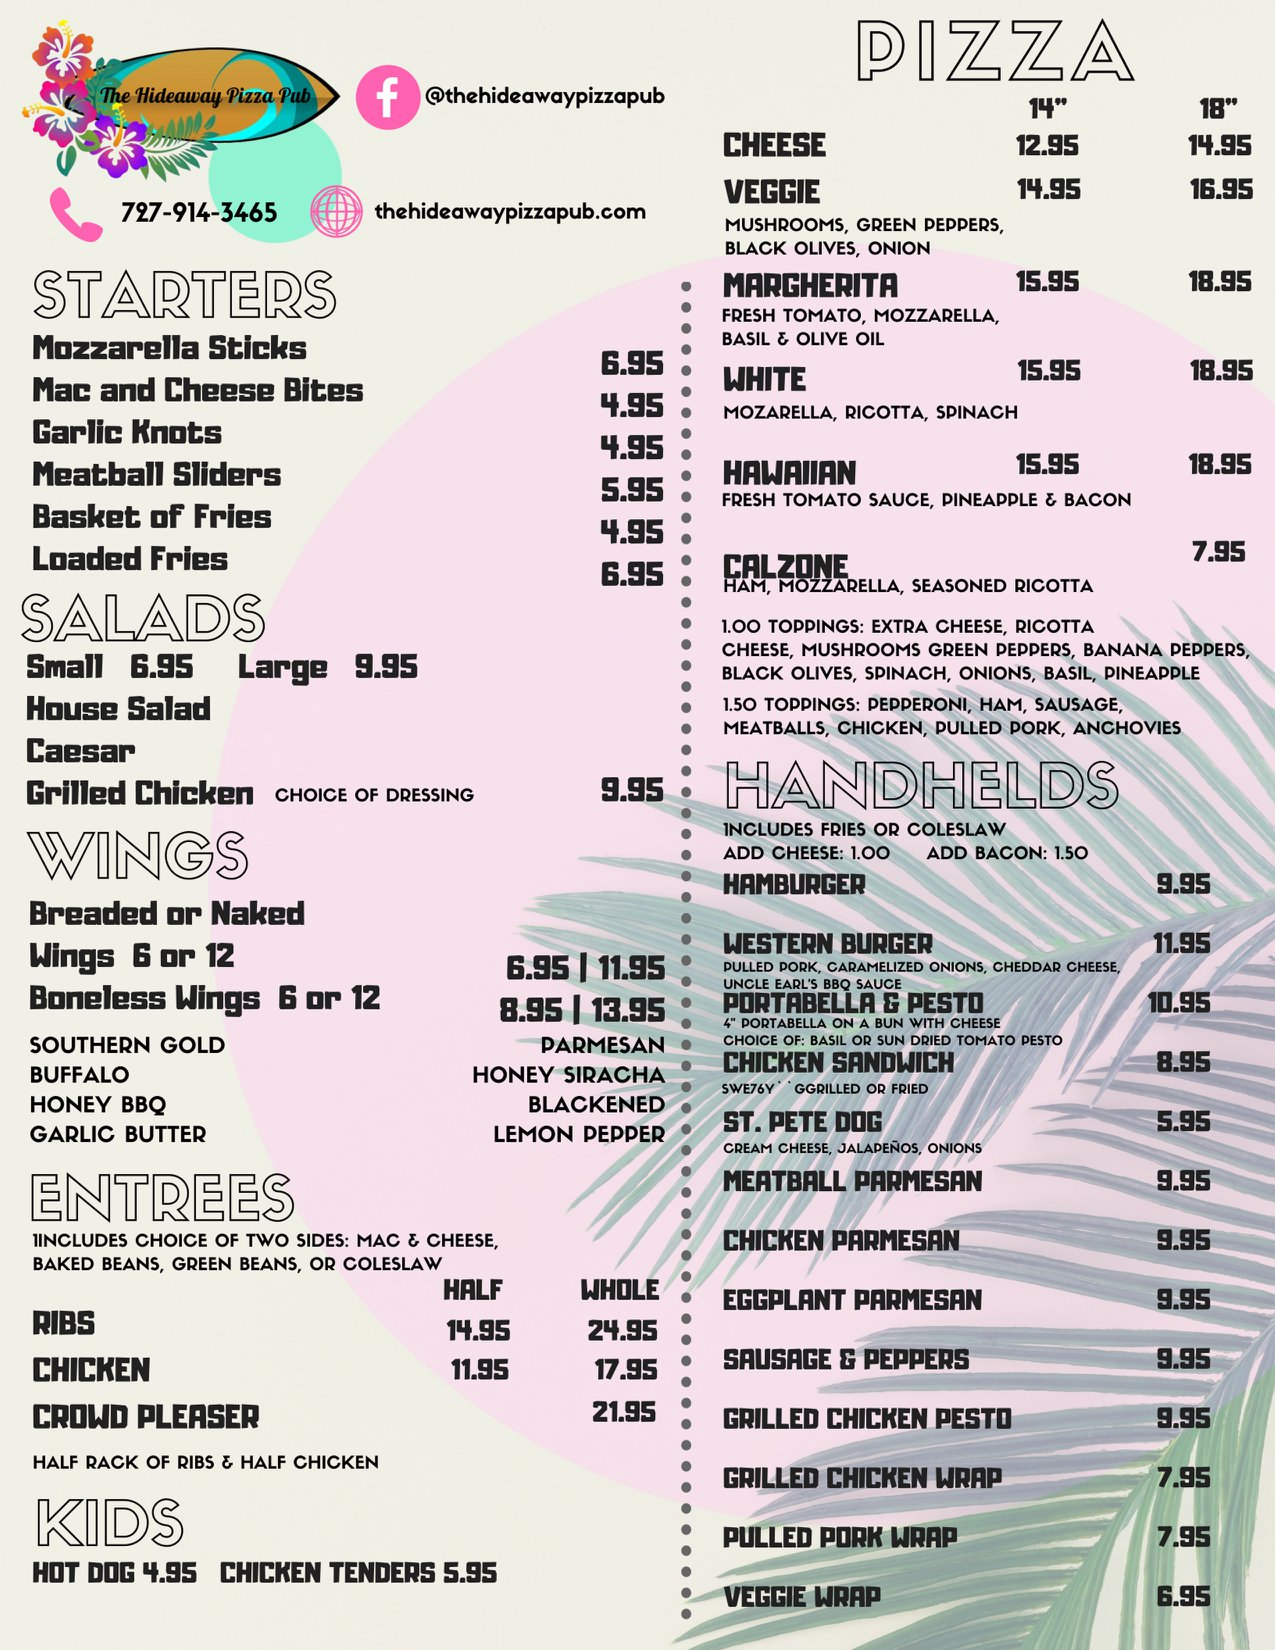 The Hideaway Pizza Pub Menu